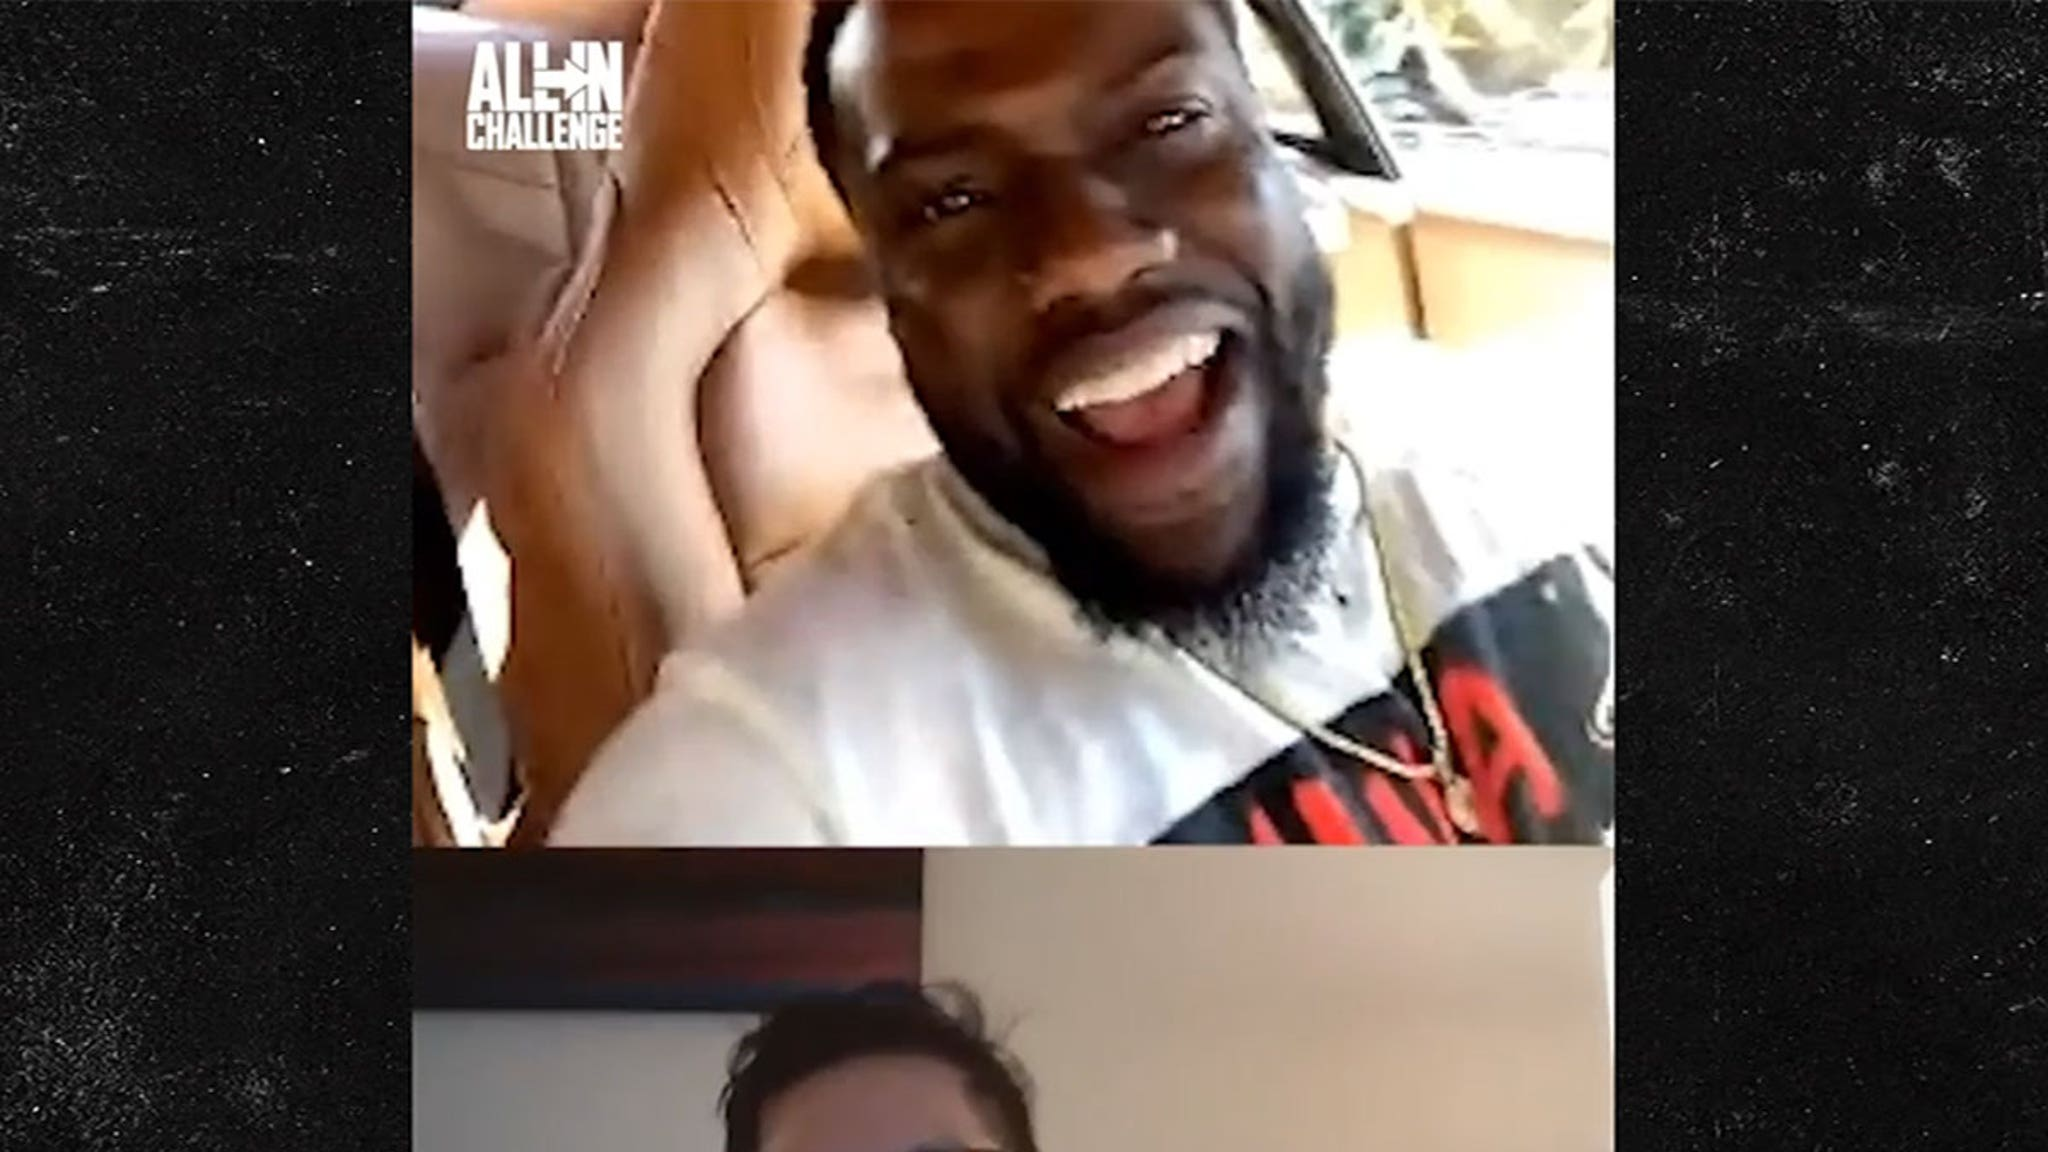 Kevin Hart Surprises All In Challenge Winner, 'You're Gonna Be a Star!!!'